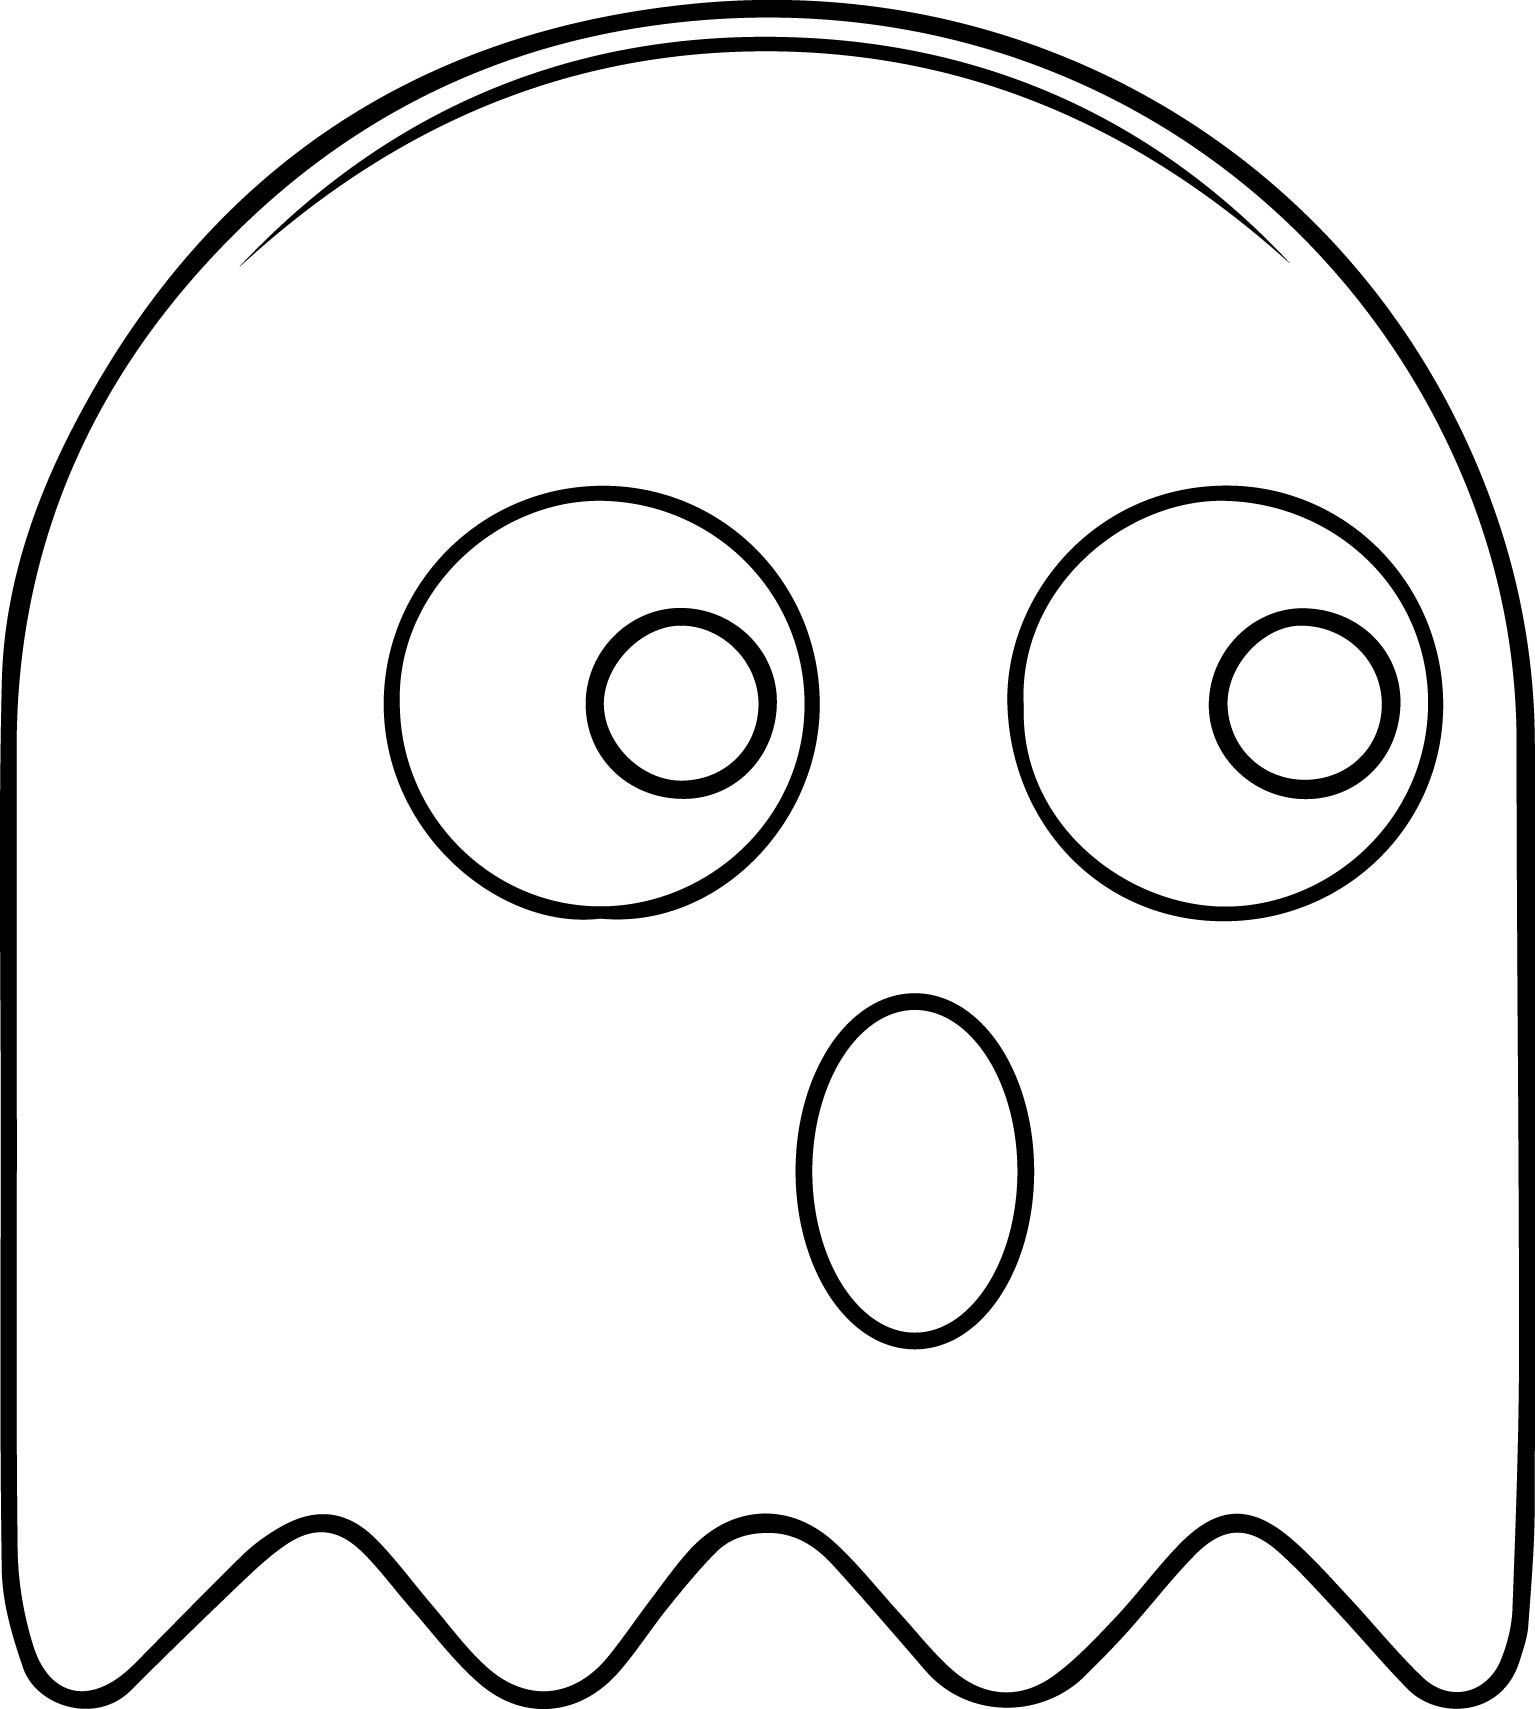 Pacman Coloring Pages At Getcolorings